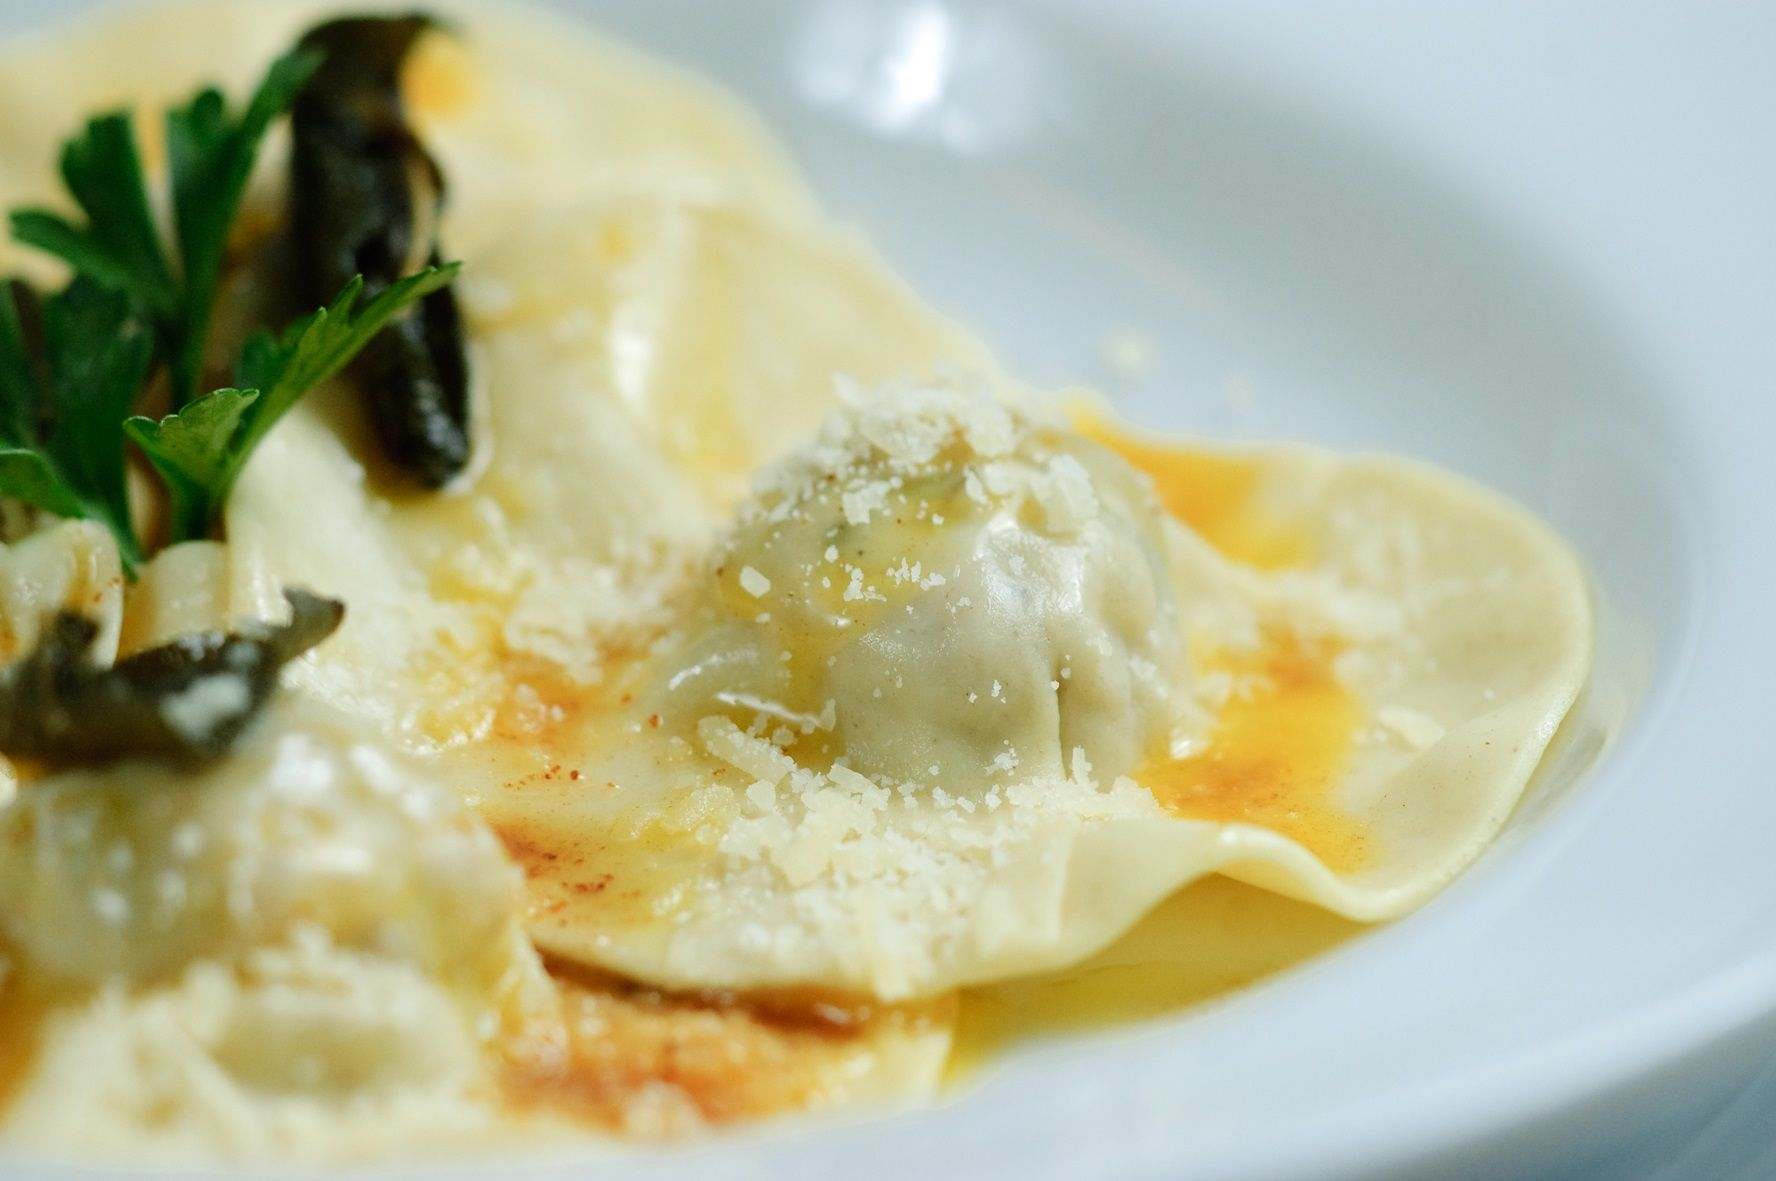 95 Keerom Celebrates Stuffed Pasta With Special Menu This June photo